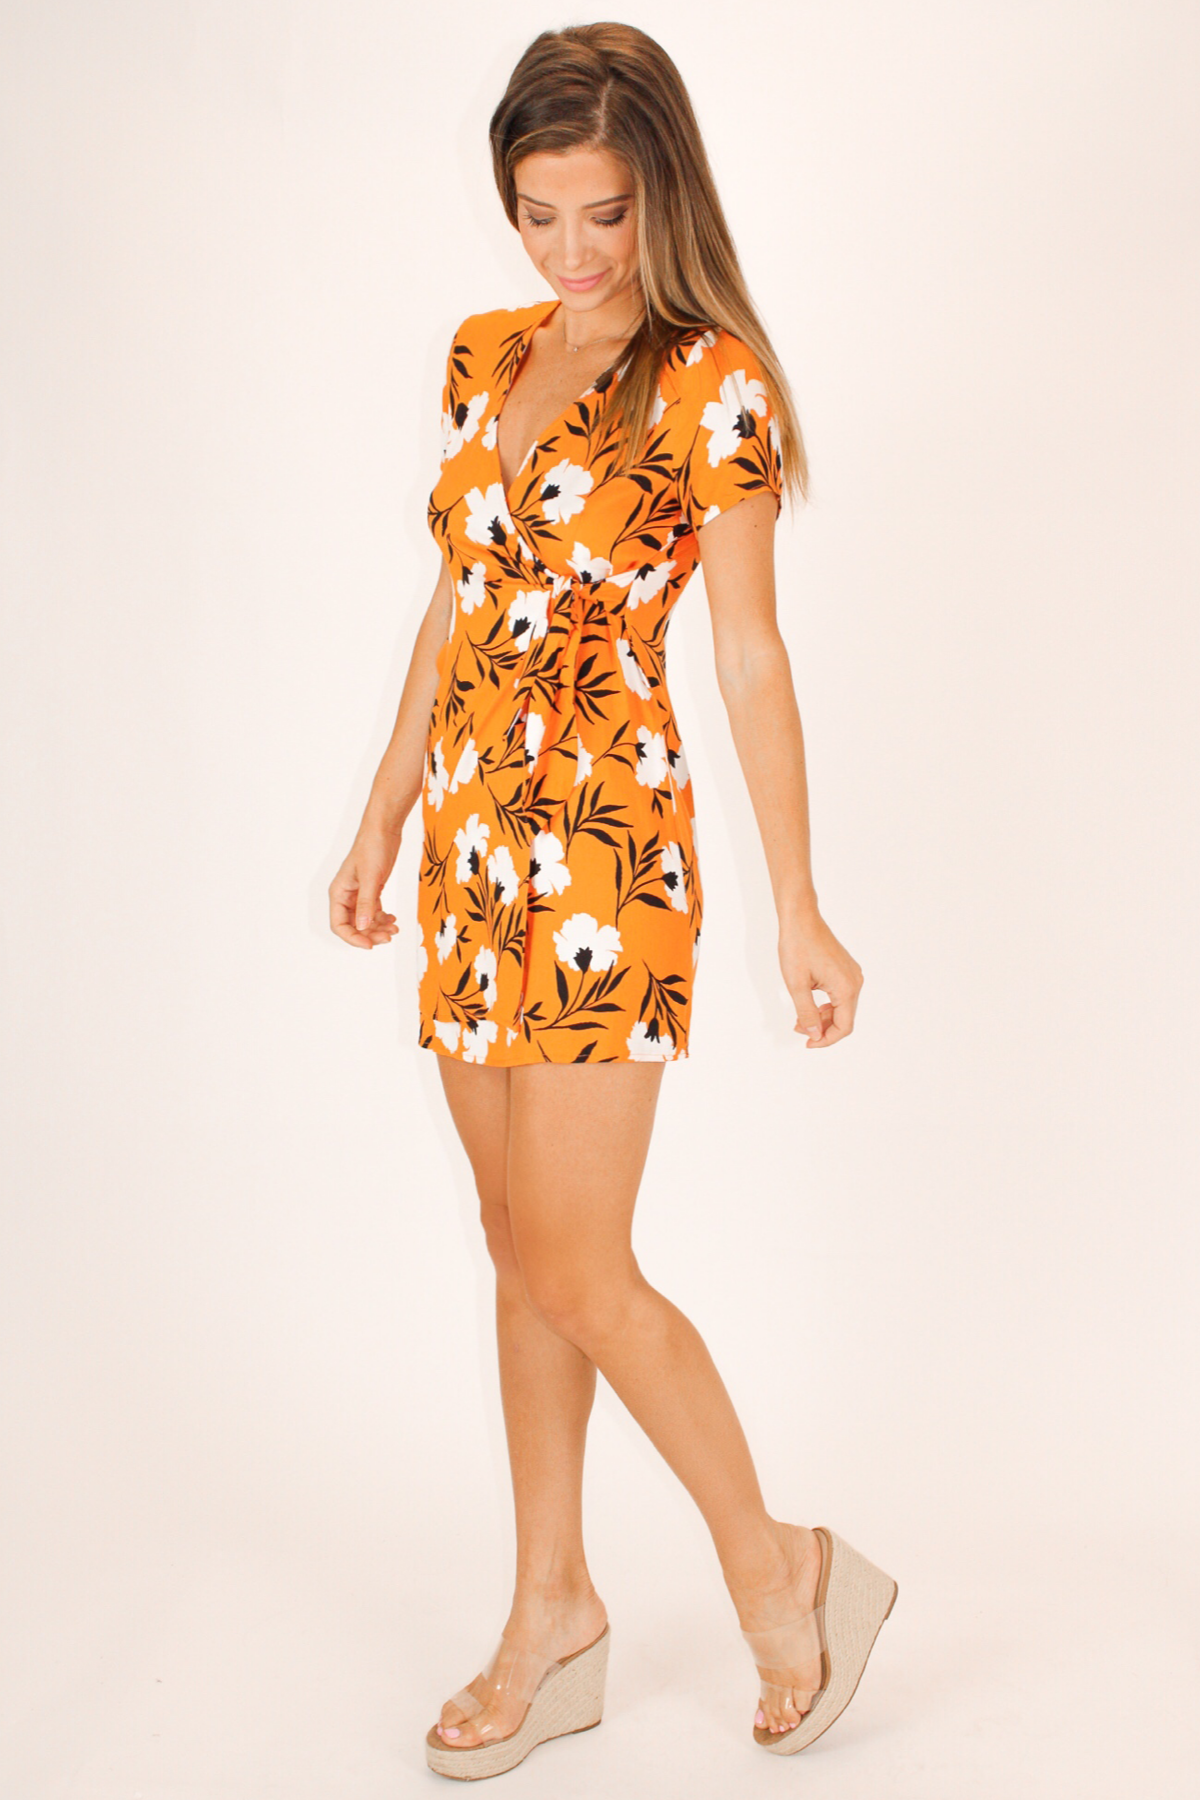 ORANGE FLORAL WAIST TIE DRESS